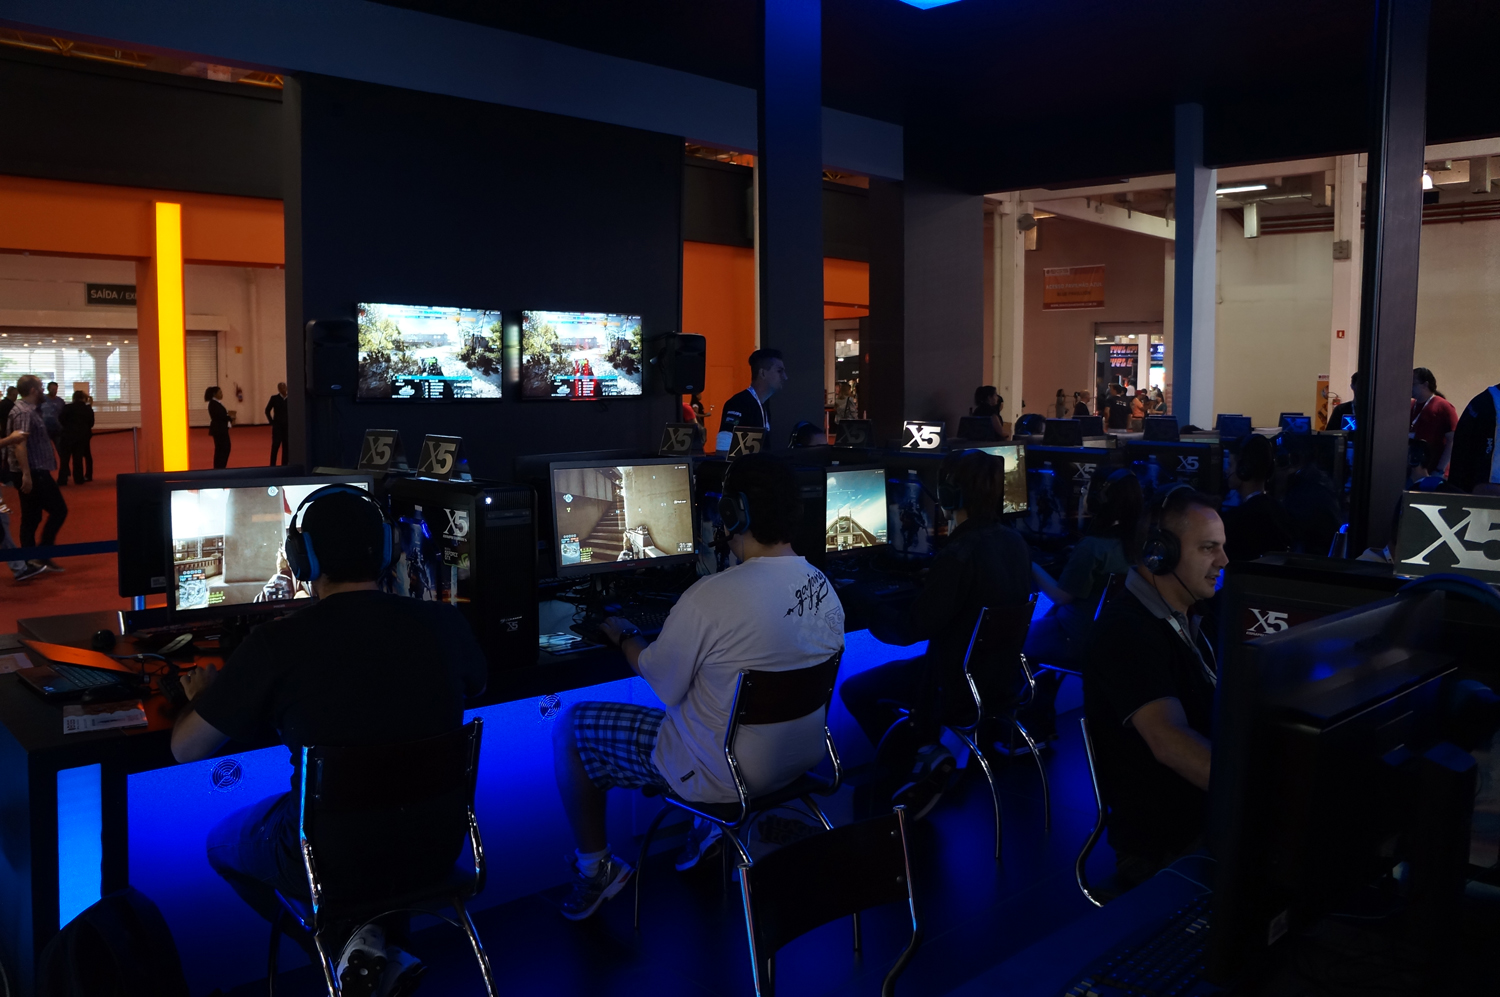 Battlefield 4 (Foto: Spencer Stachi / TechTudo)